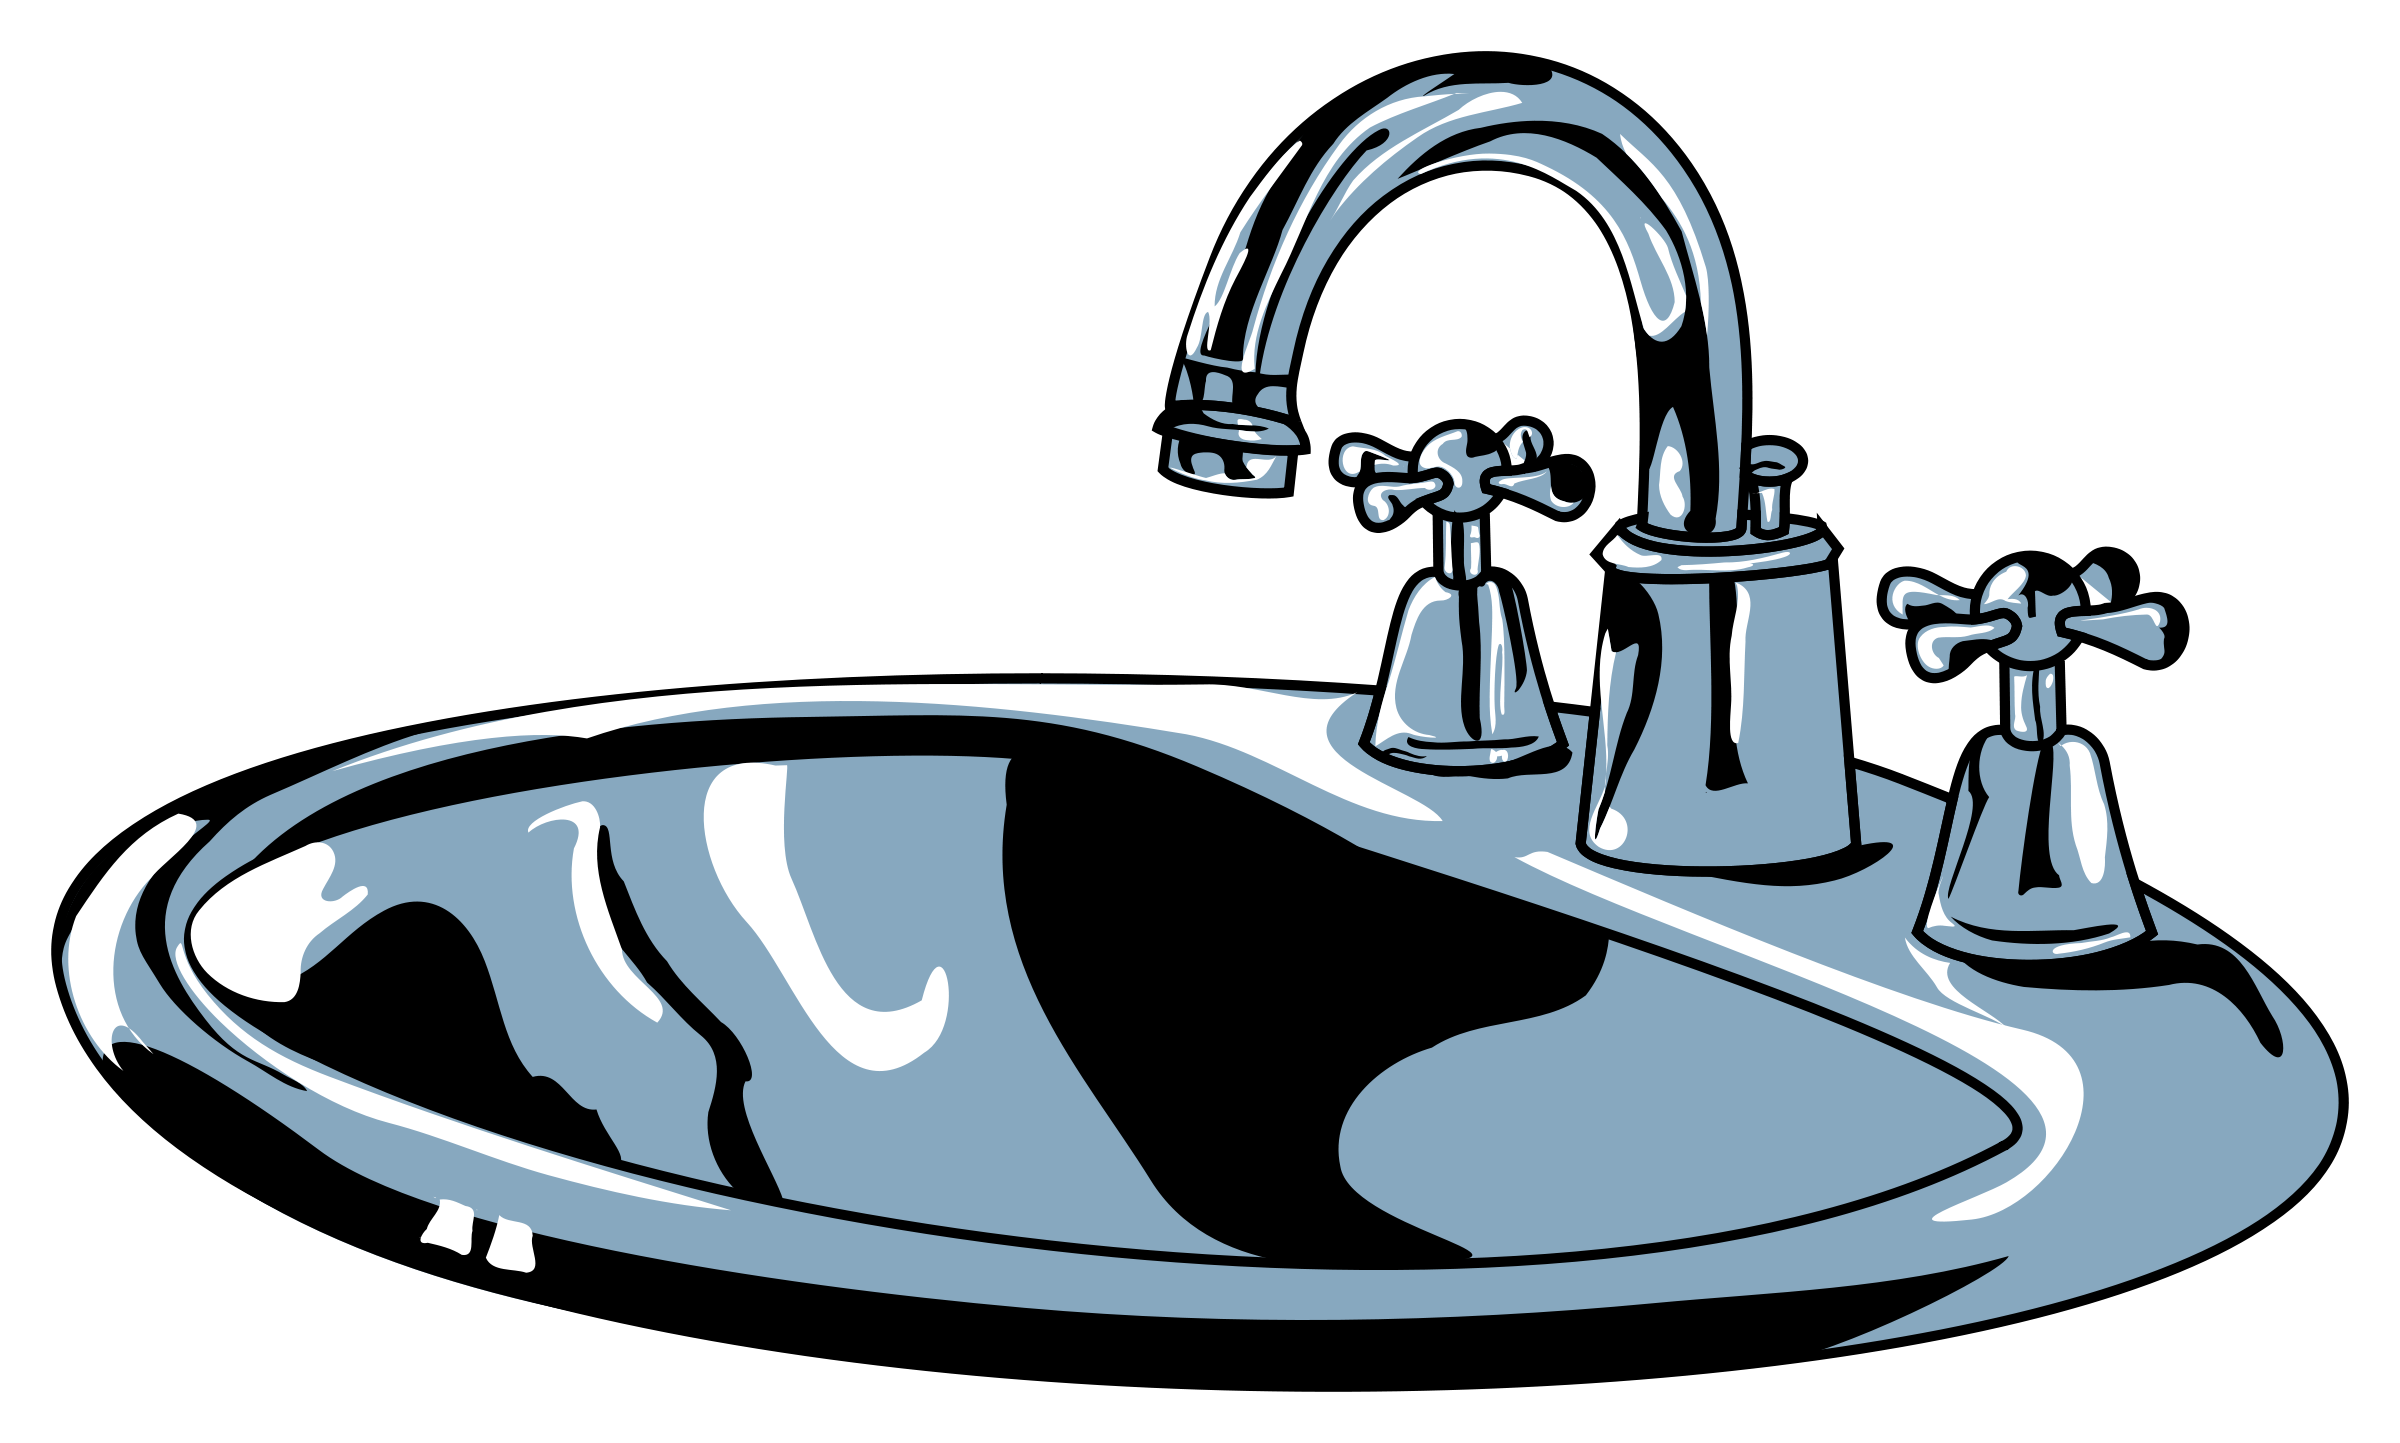 Kitchen sink clipart free images 2.